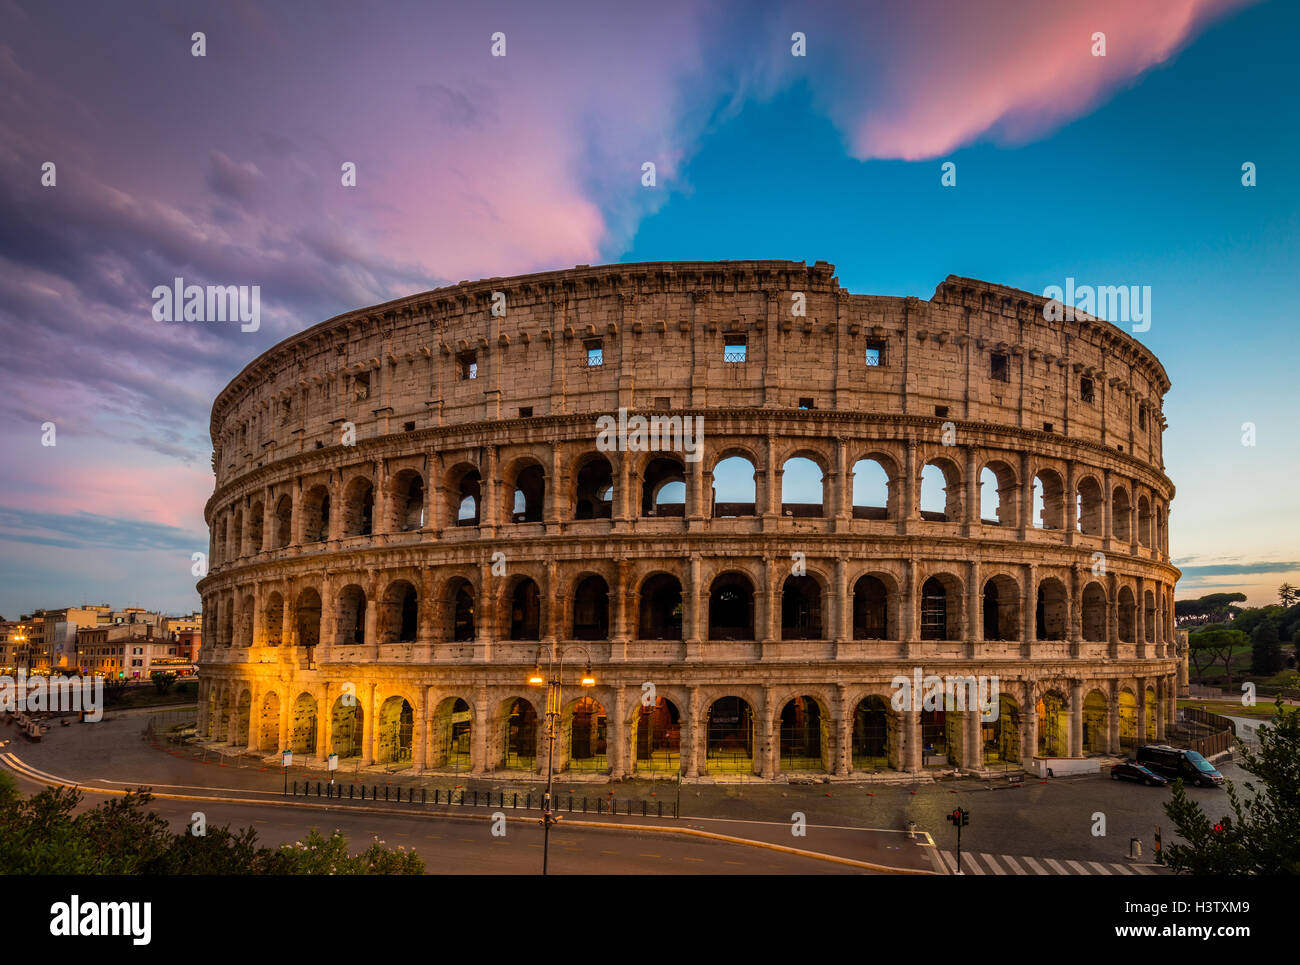 The Colosseum, the largest amphitheatre in the world, is an elliptical amphitheatre in the centre of the city of - Stock Image